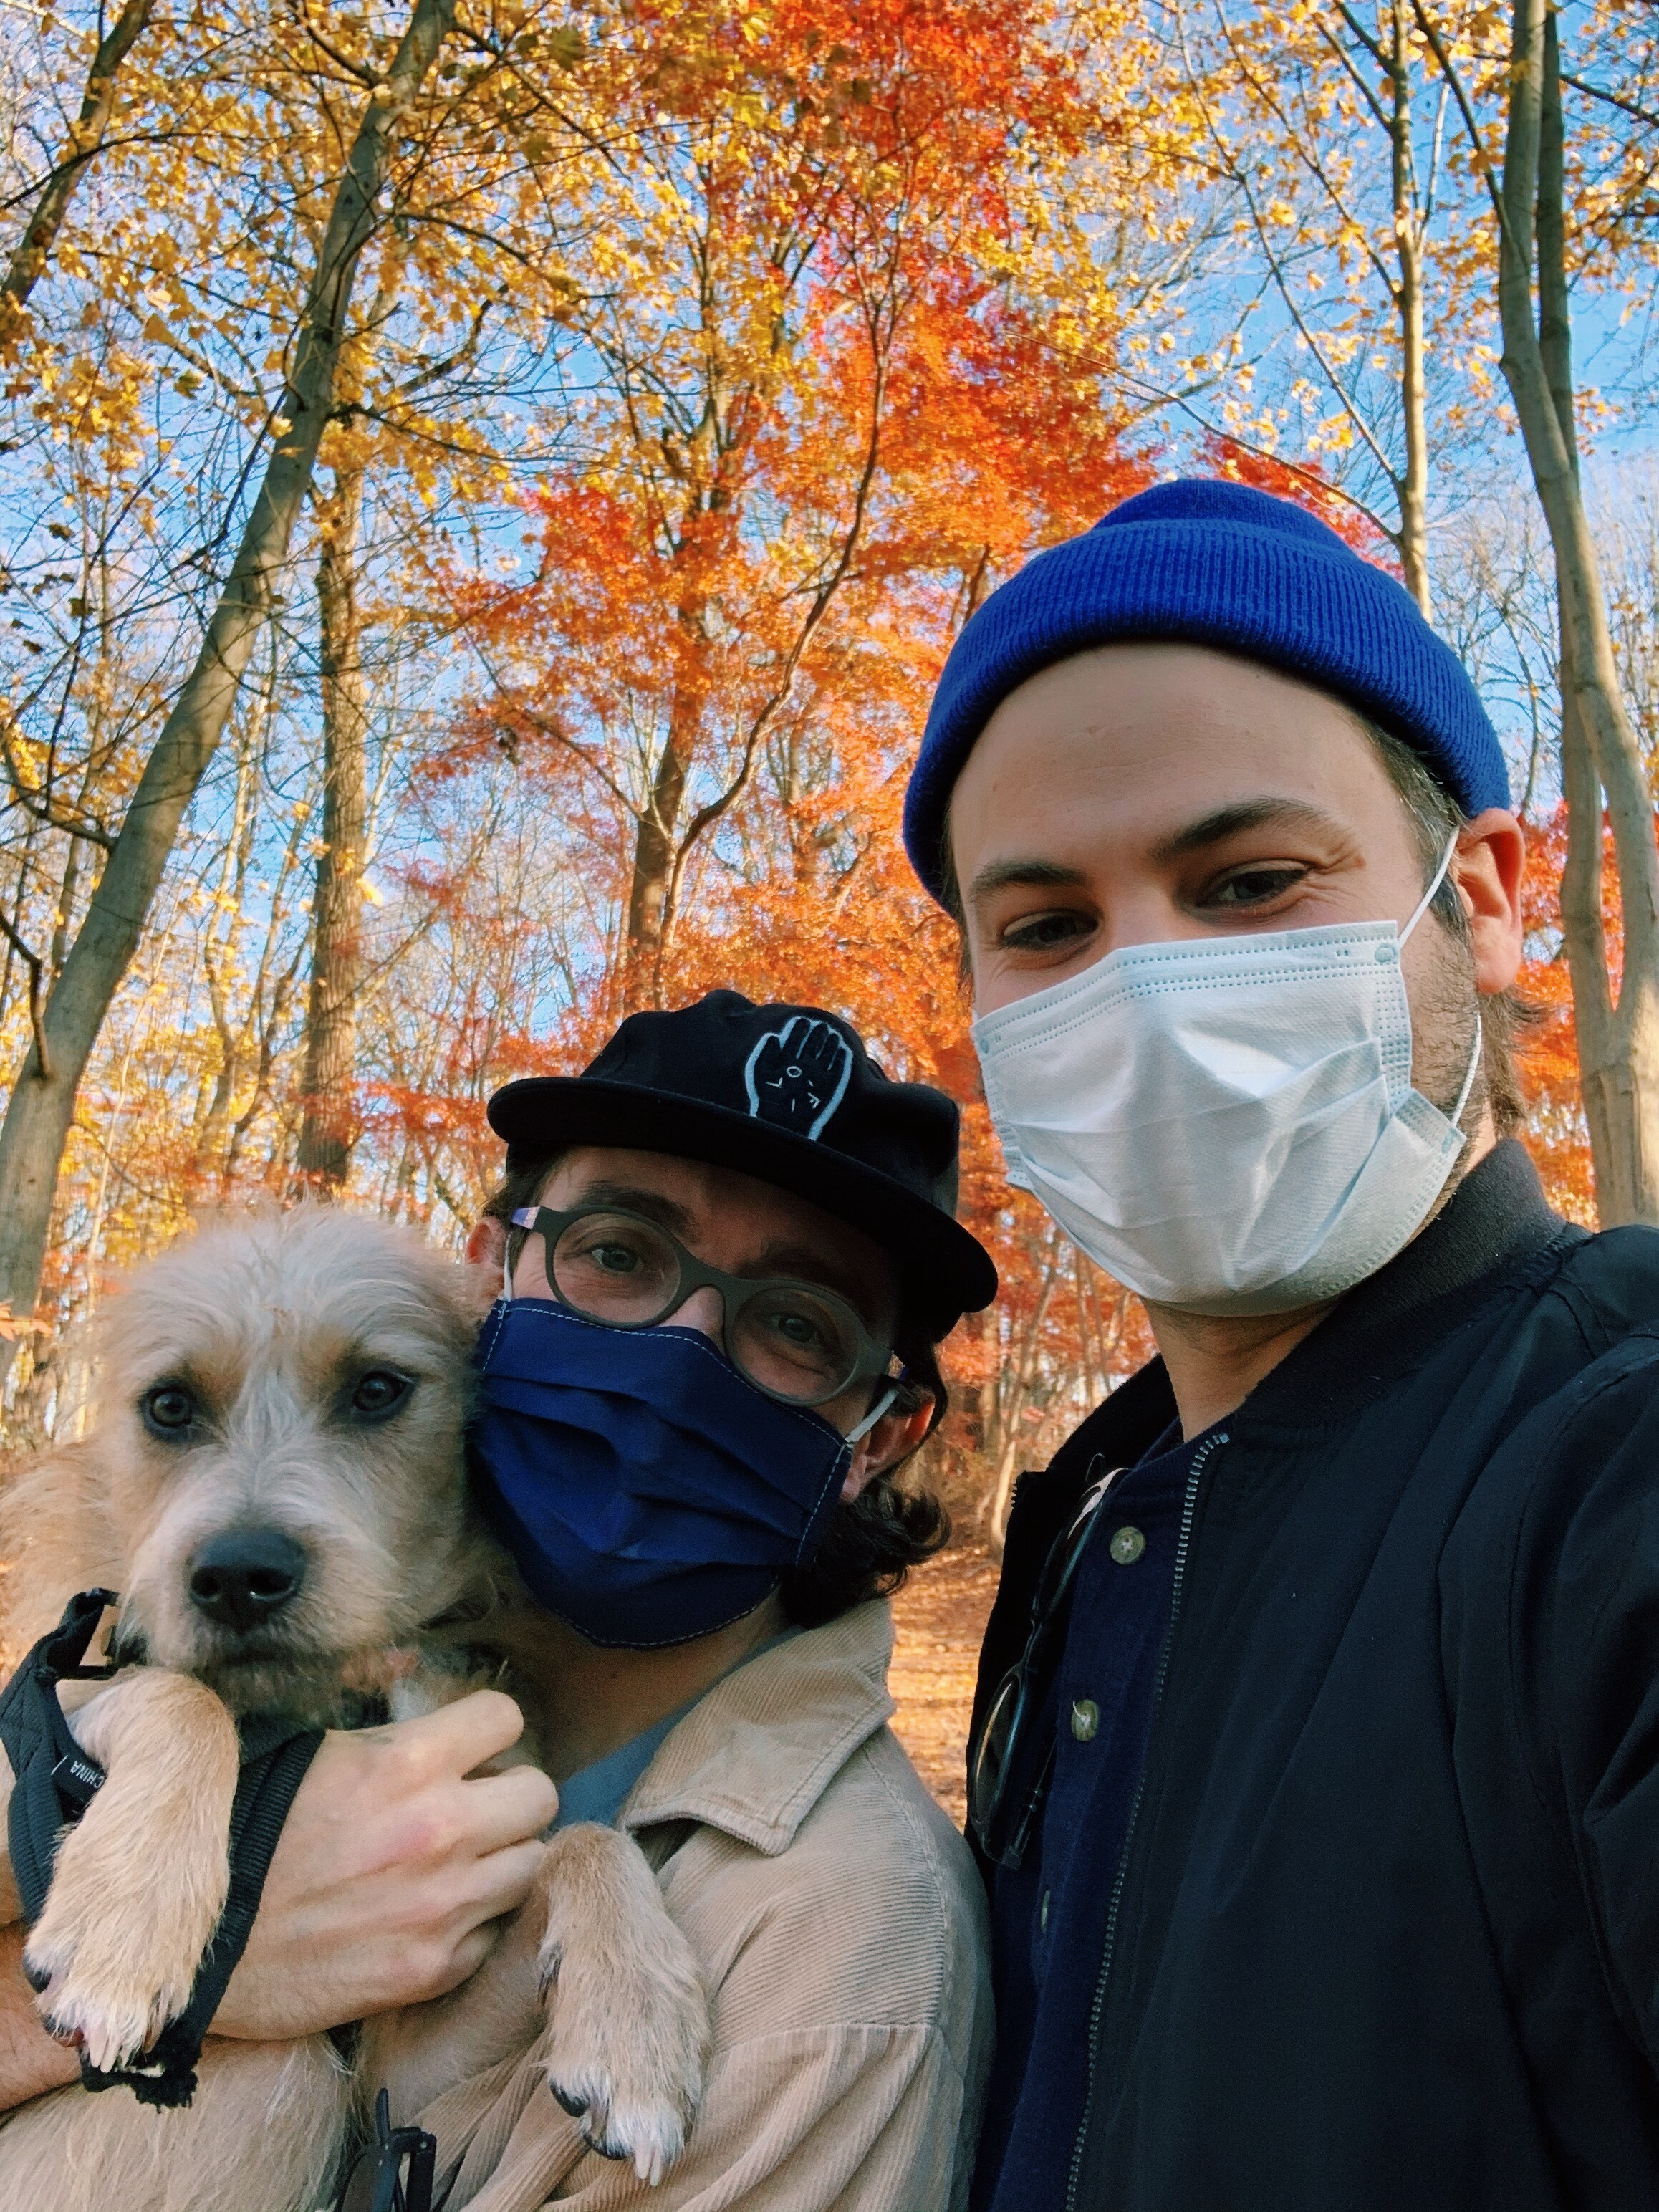 Mike Kaiser and his husband, Wade Keller, and their dog, Rooney, taking a walk at Wissahickon Valley Park.